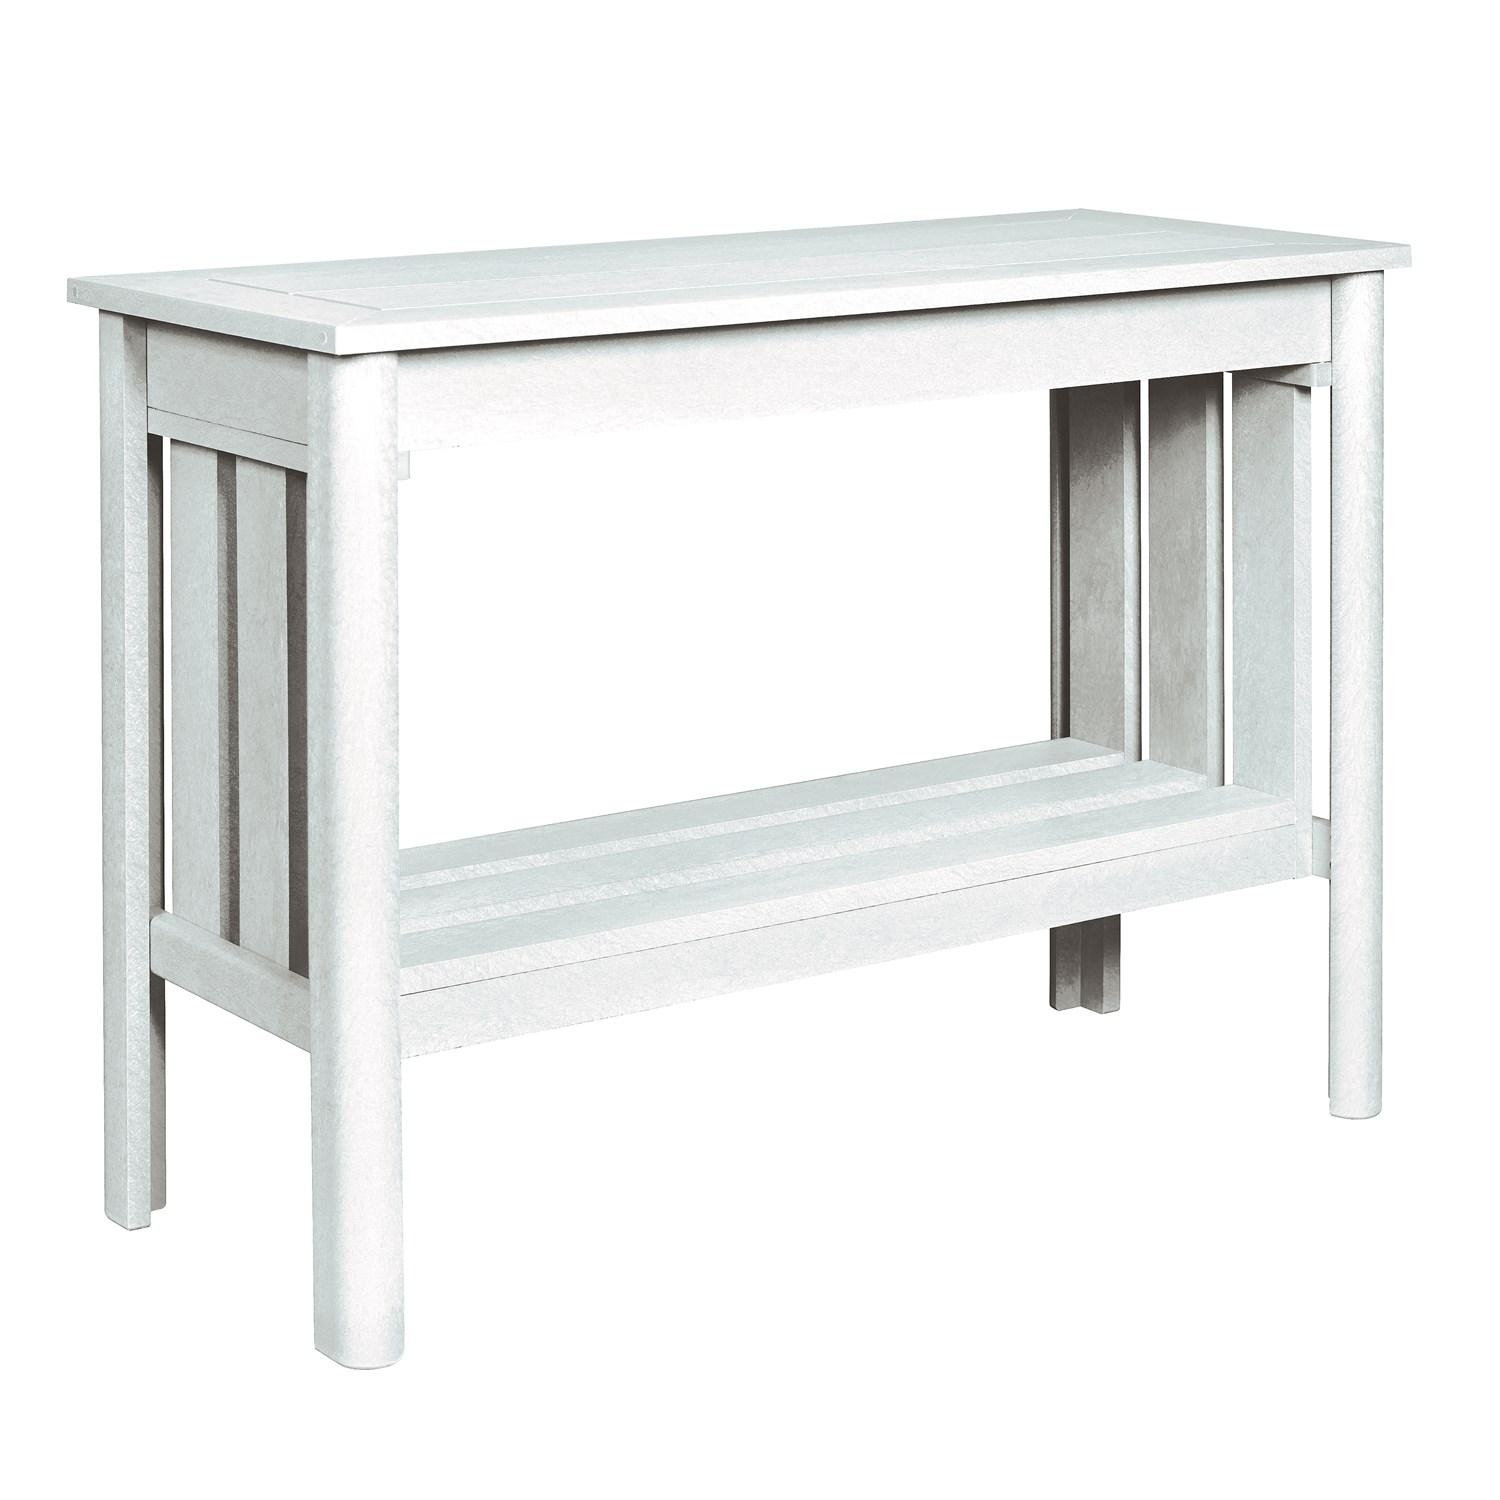 Patio Precision Stratford Sofa Table | The Simple Stores Pertaining To Stratford Sofas (View 20 of 20)